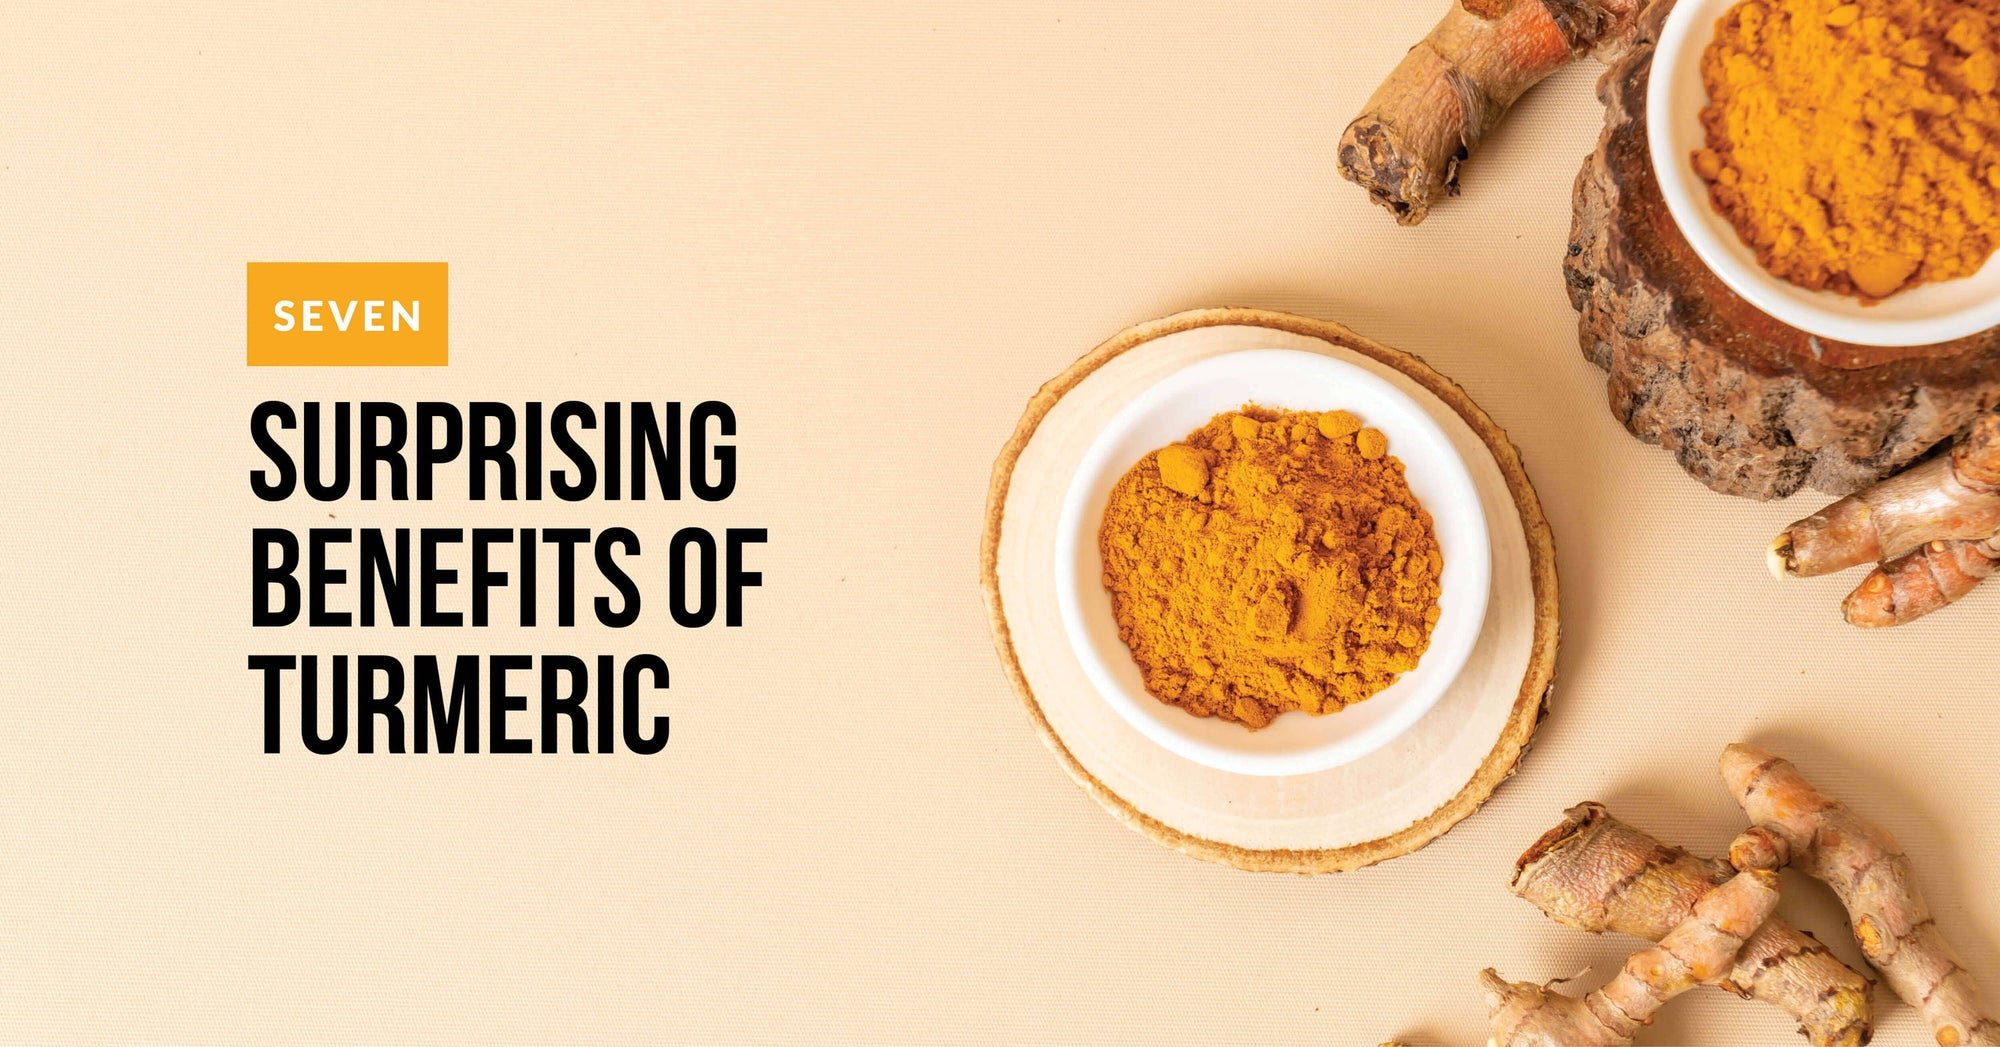 Turmeric:  7 Surprising Health Benefits